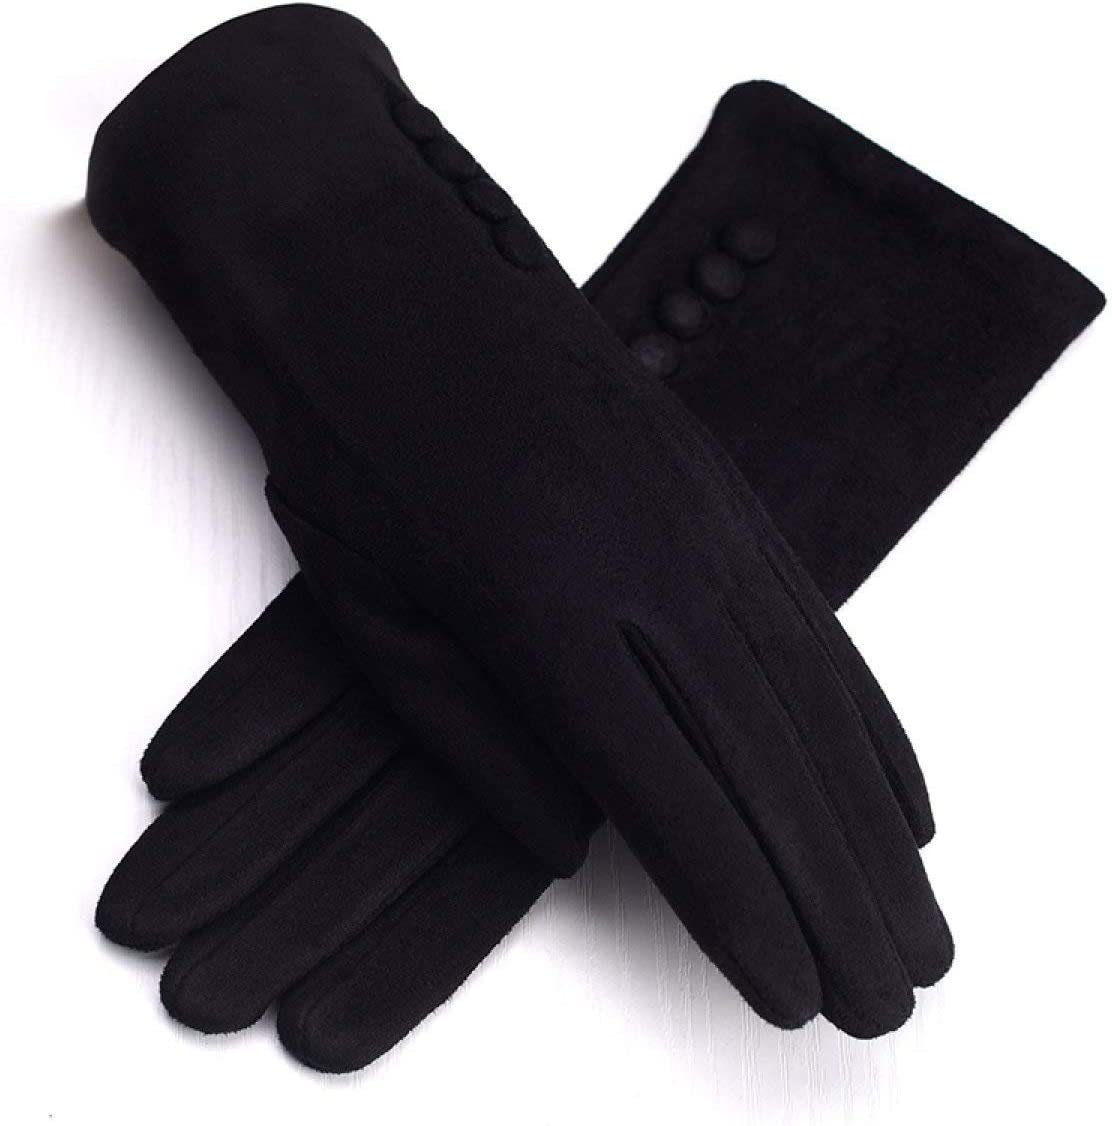 CWJ Mens Fashion Gloves Touchscreen Cold-Proof Windproof Warm Gloves